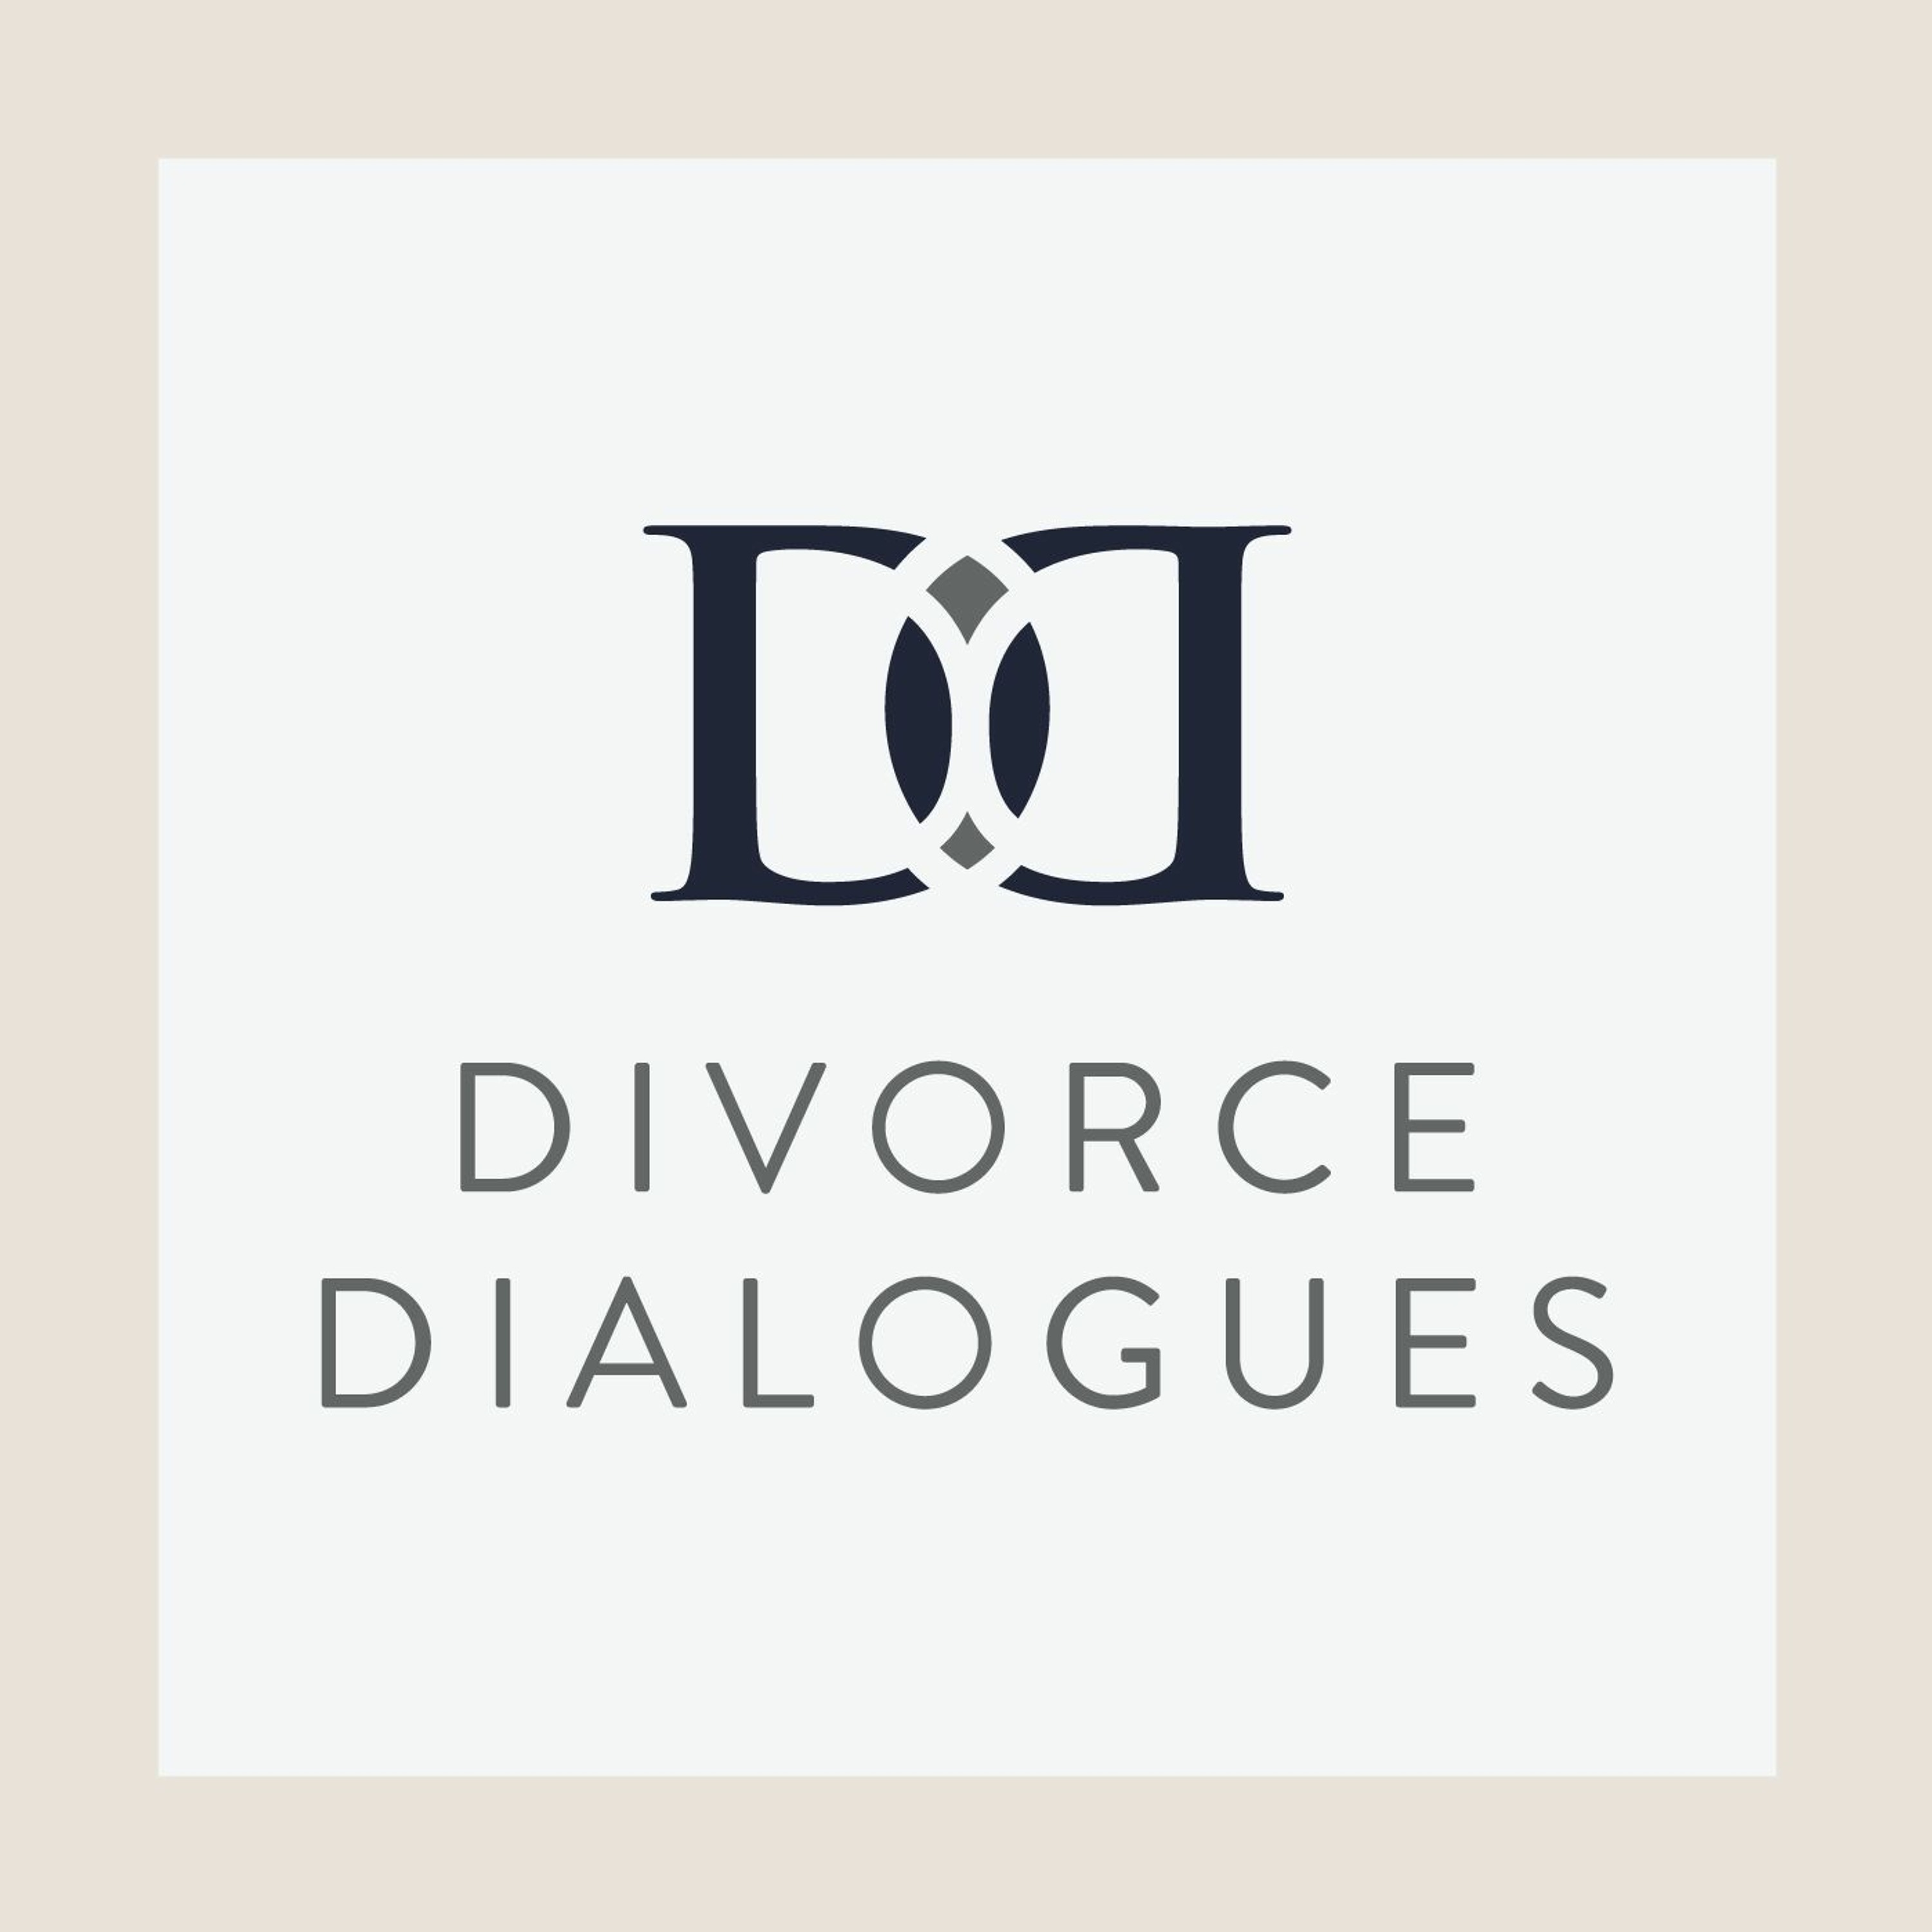 Divorce Dialogues - Connecting with Your Kids as a Divorced Dad with Tommy Maloney